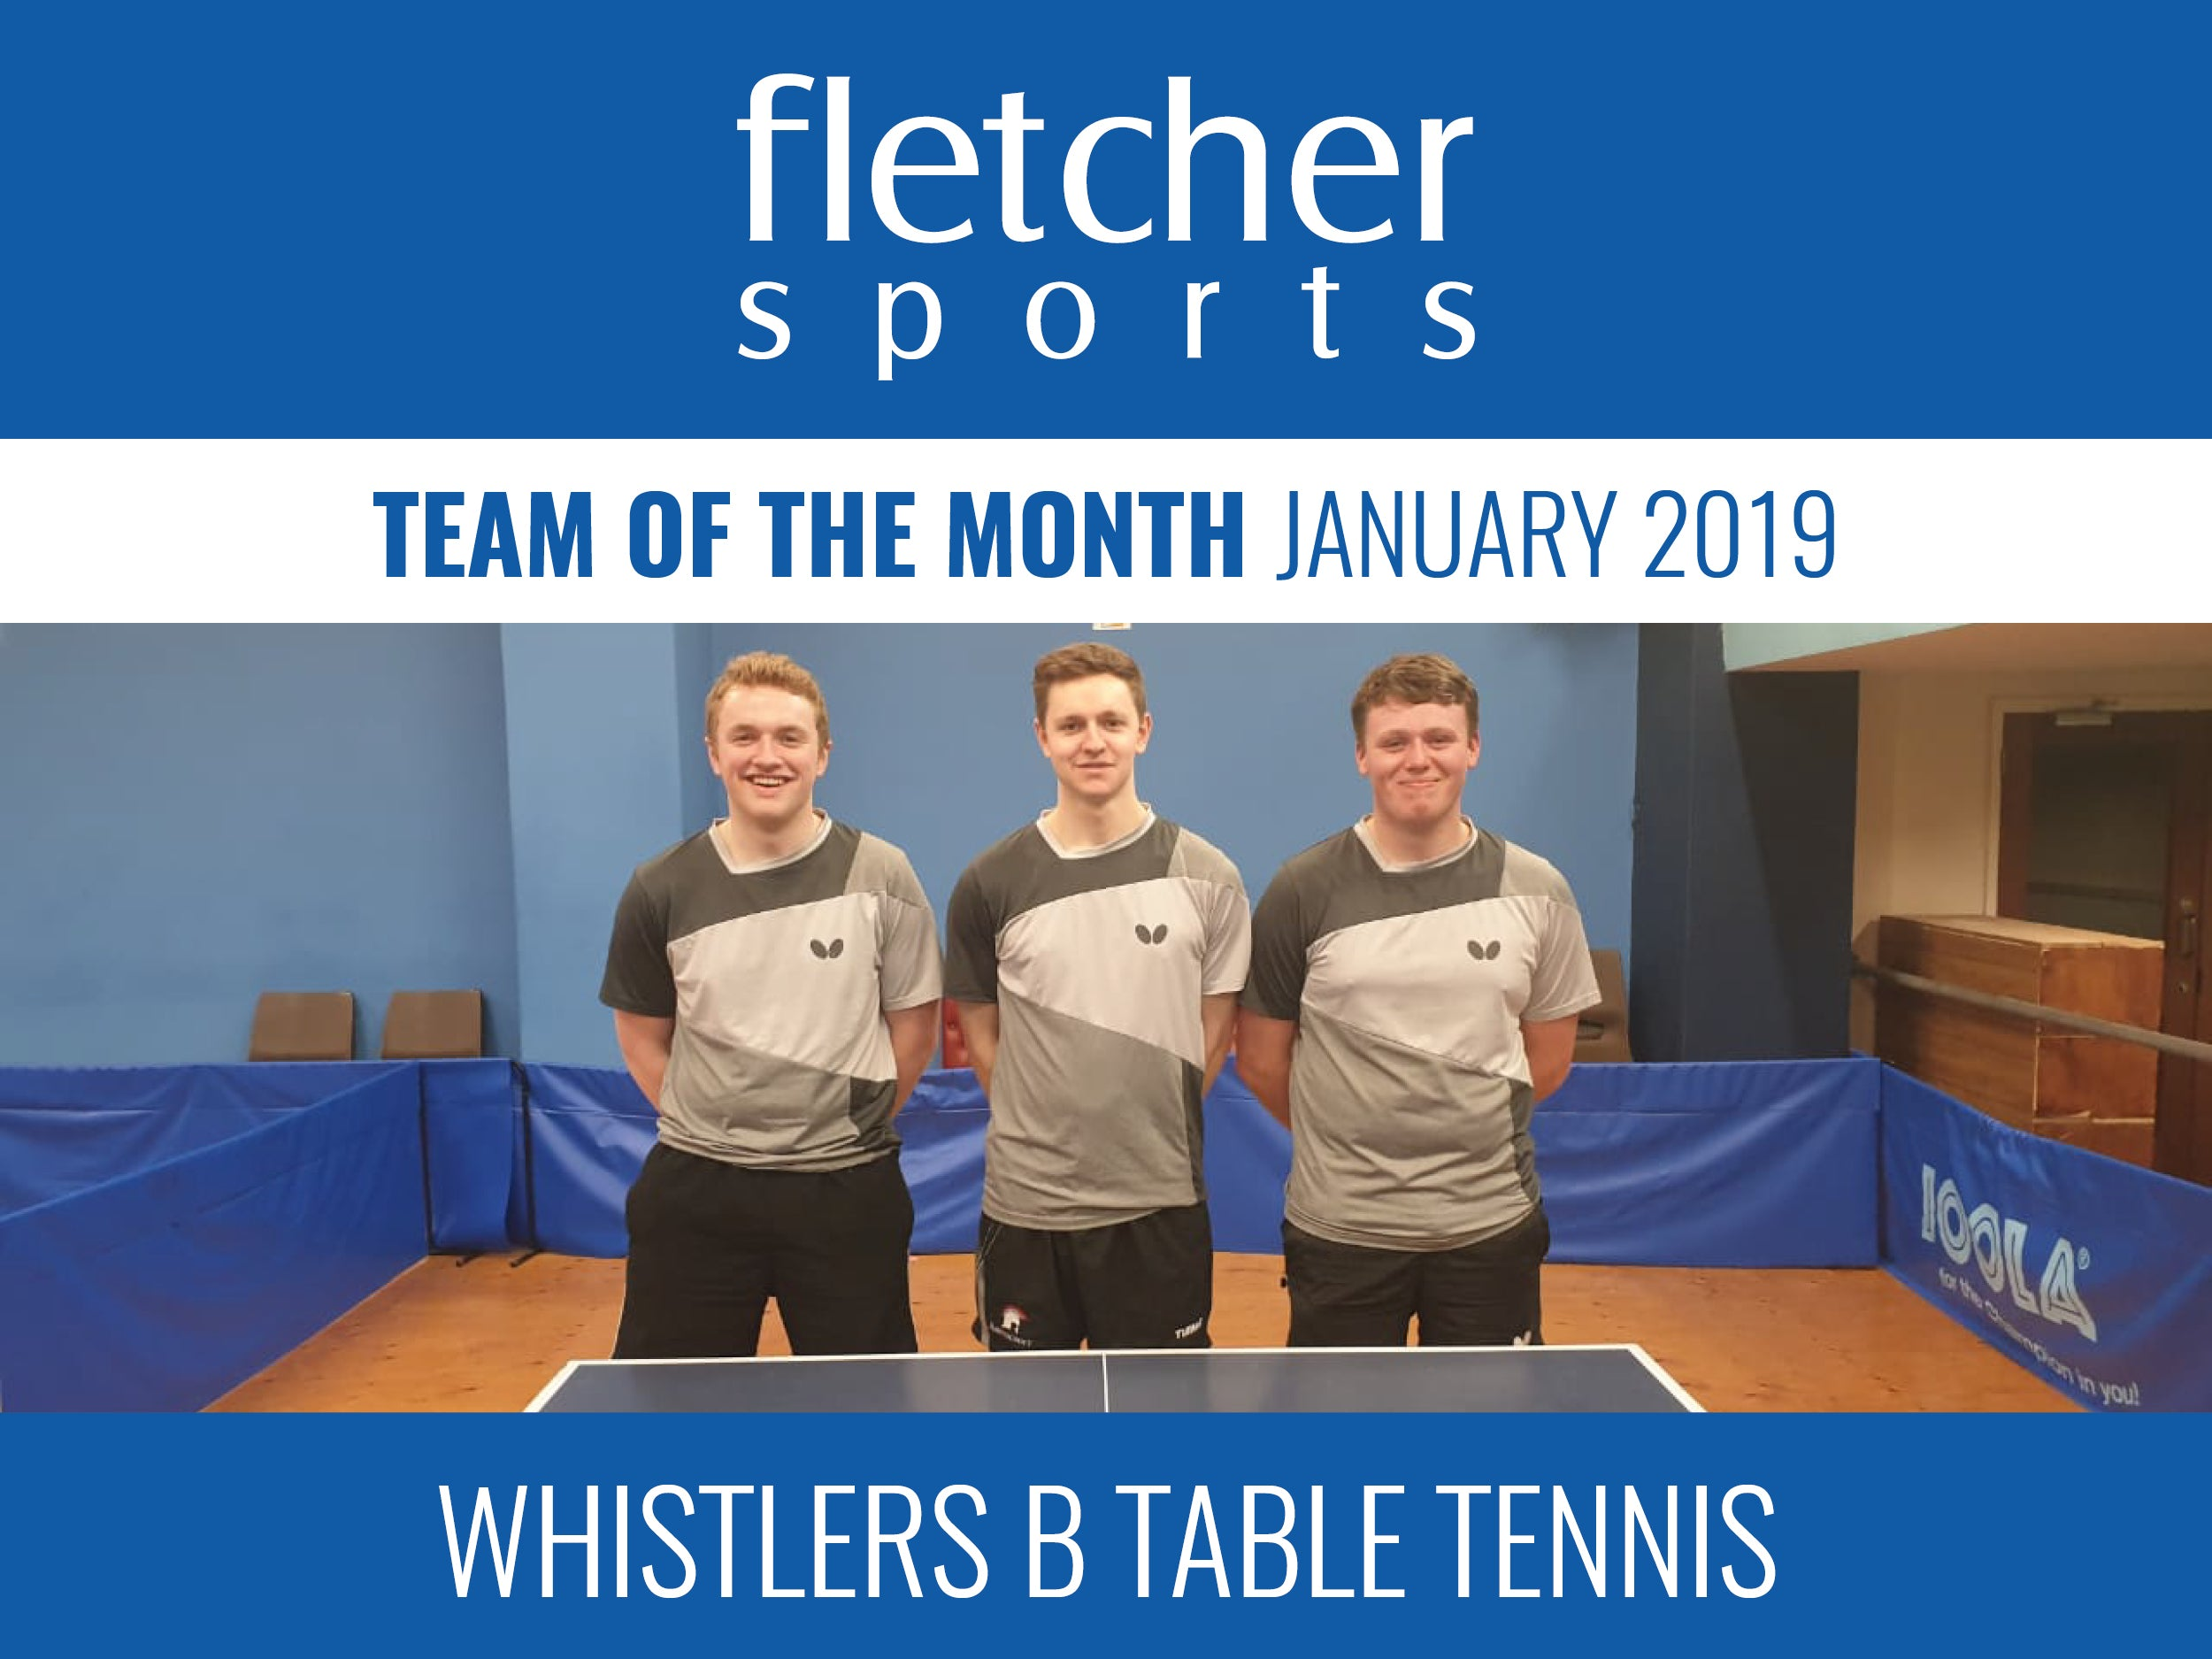 Team of the Month for January - Whistlers B table tennis